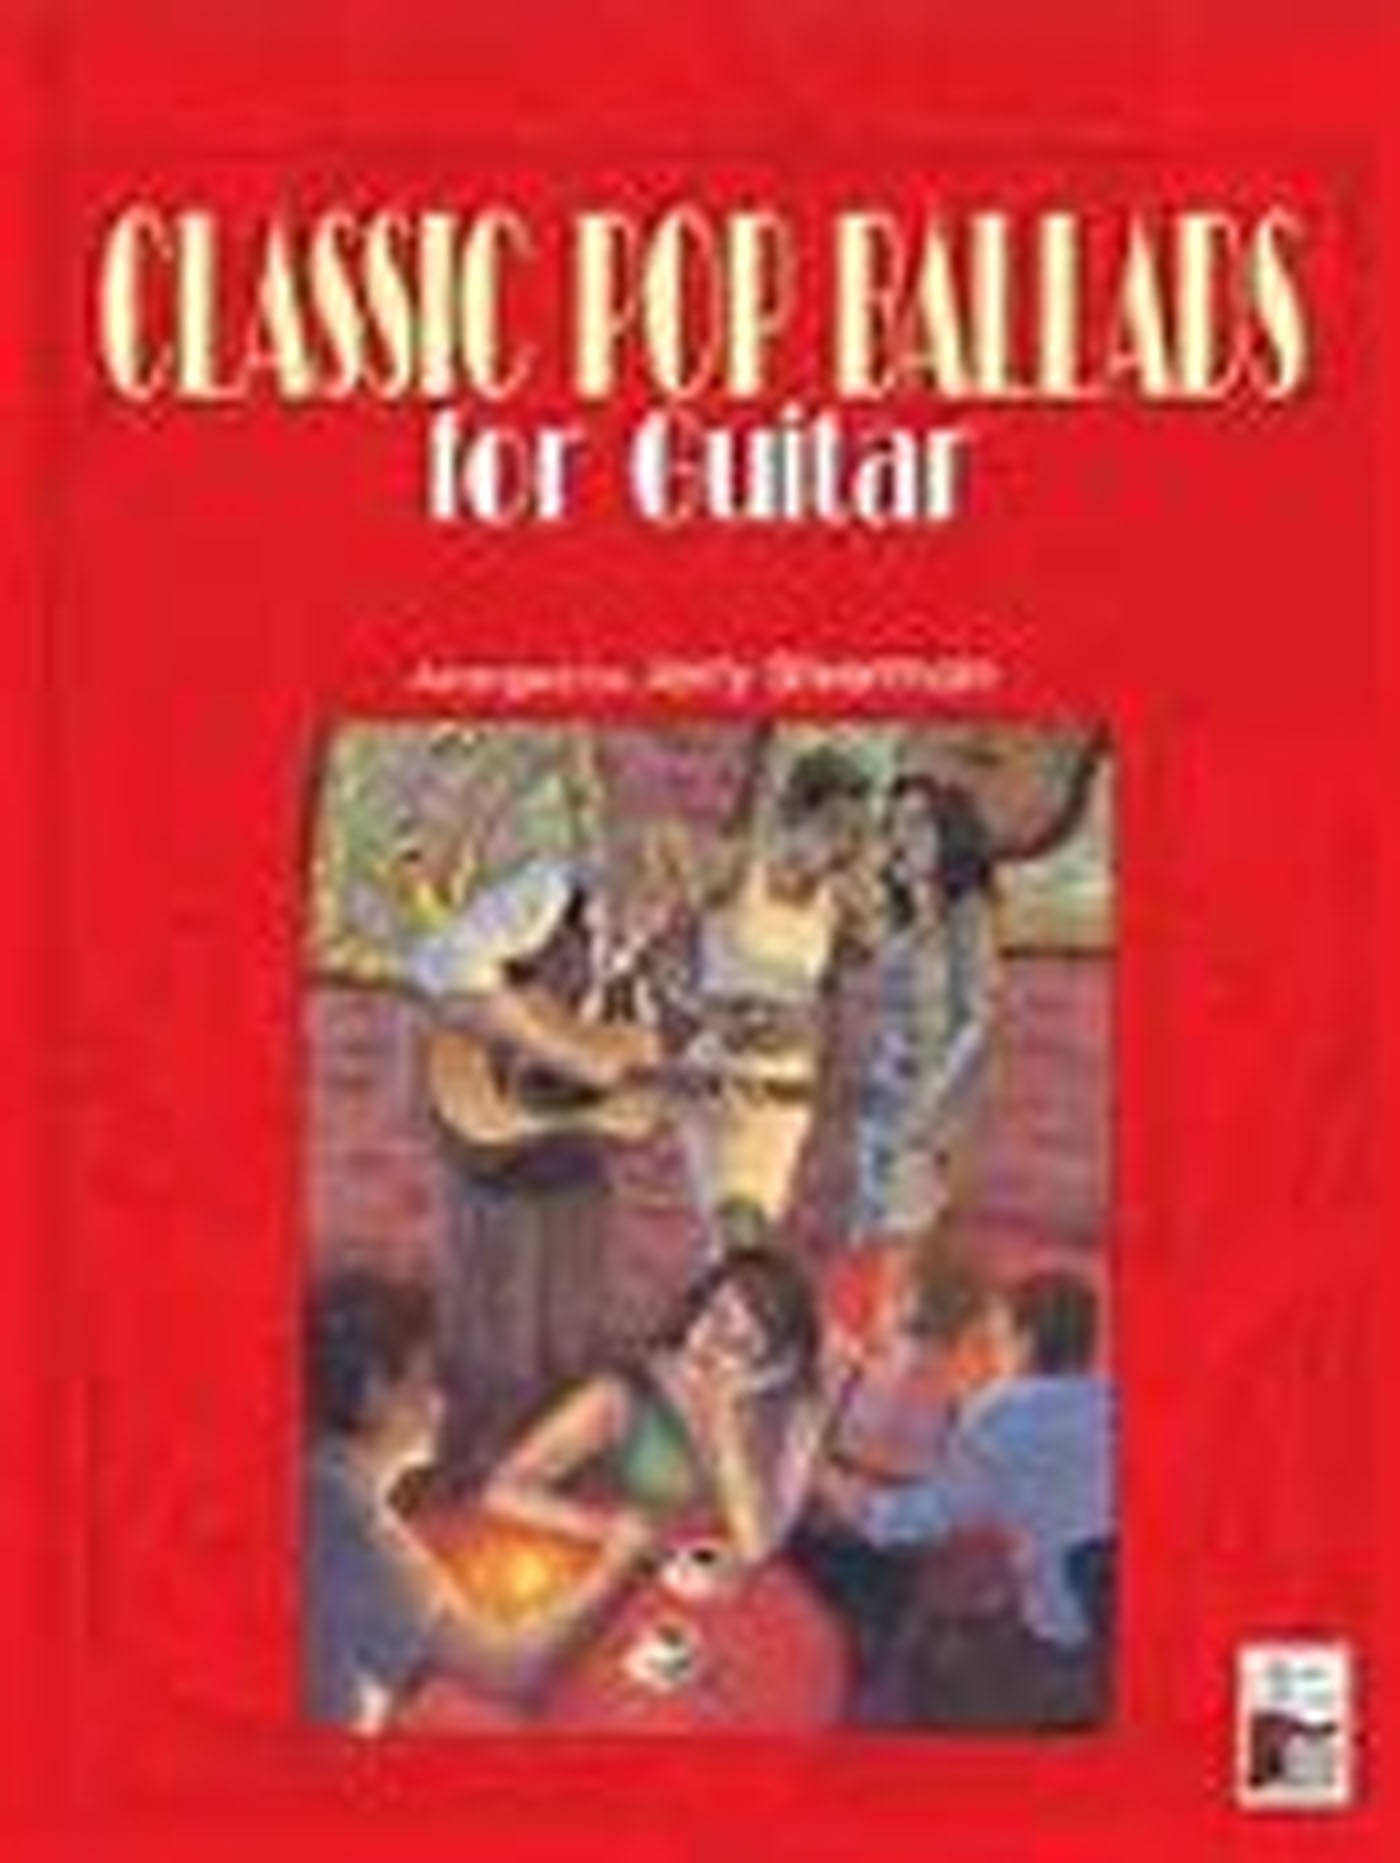 Classic Pop Ballads for Guitar Book Notes Tab Chords Lyrics Jerry Silverman S15